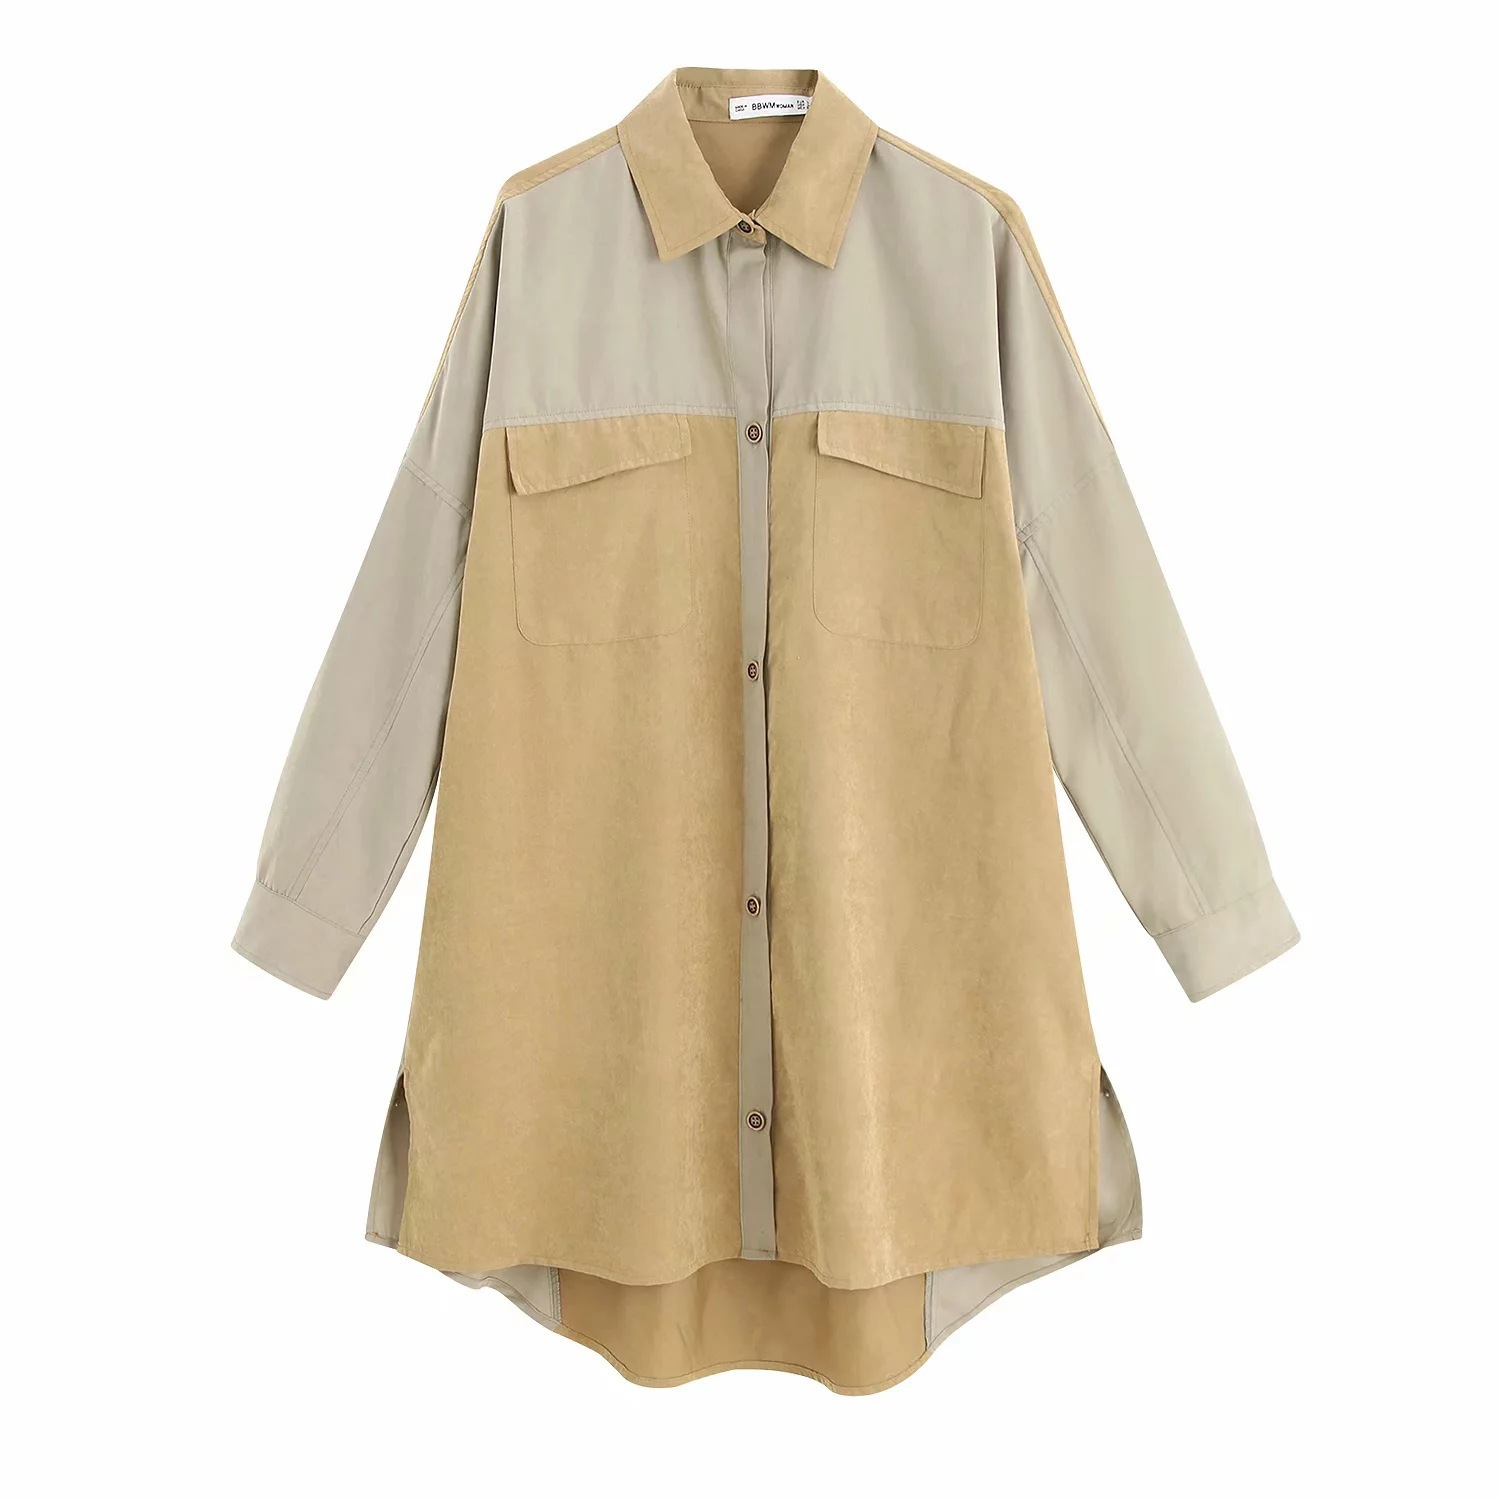 2019 Autumn Clothing New Style Korean-style Loose-Fit Versatile Mixed Colors Workwear Wind RA Shirt Middle Long Coat Women's thumbnail